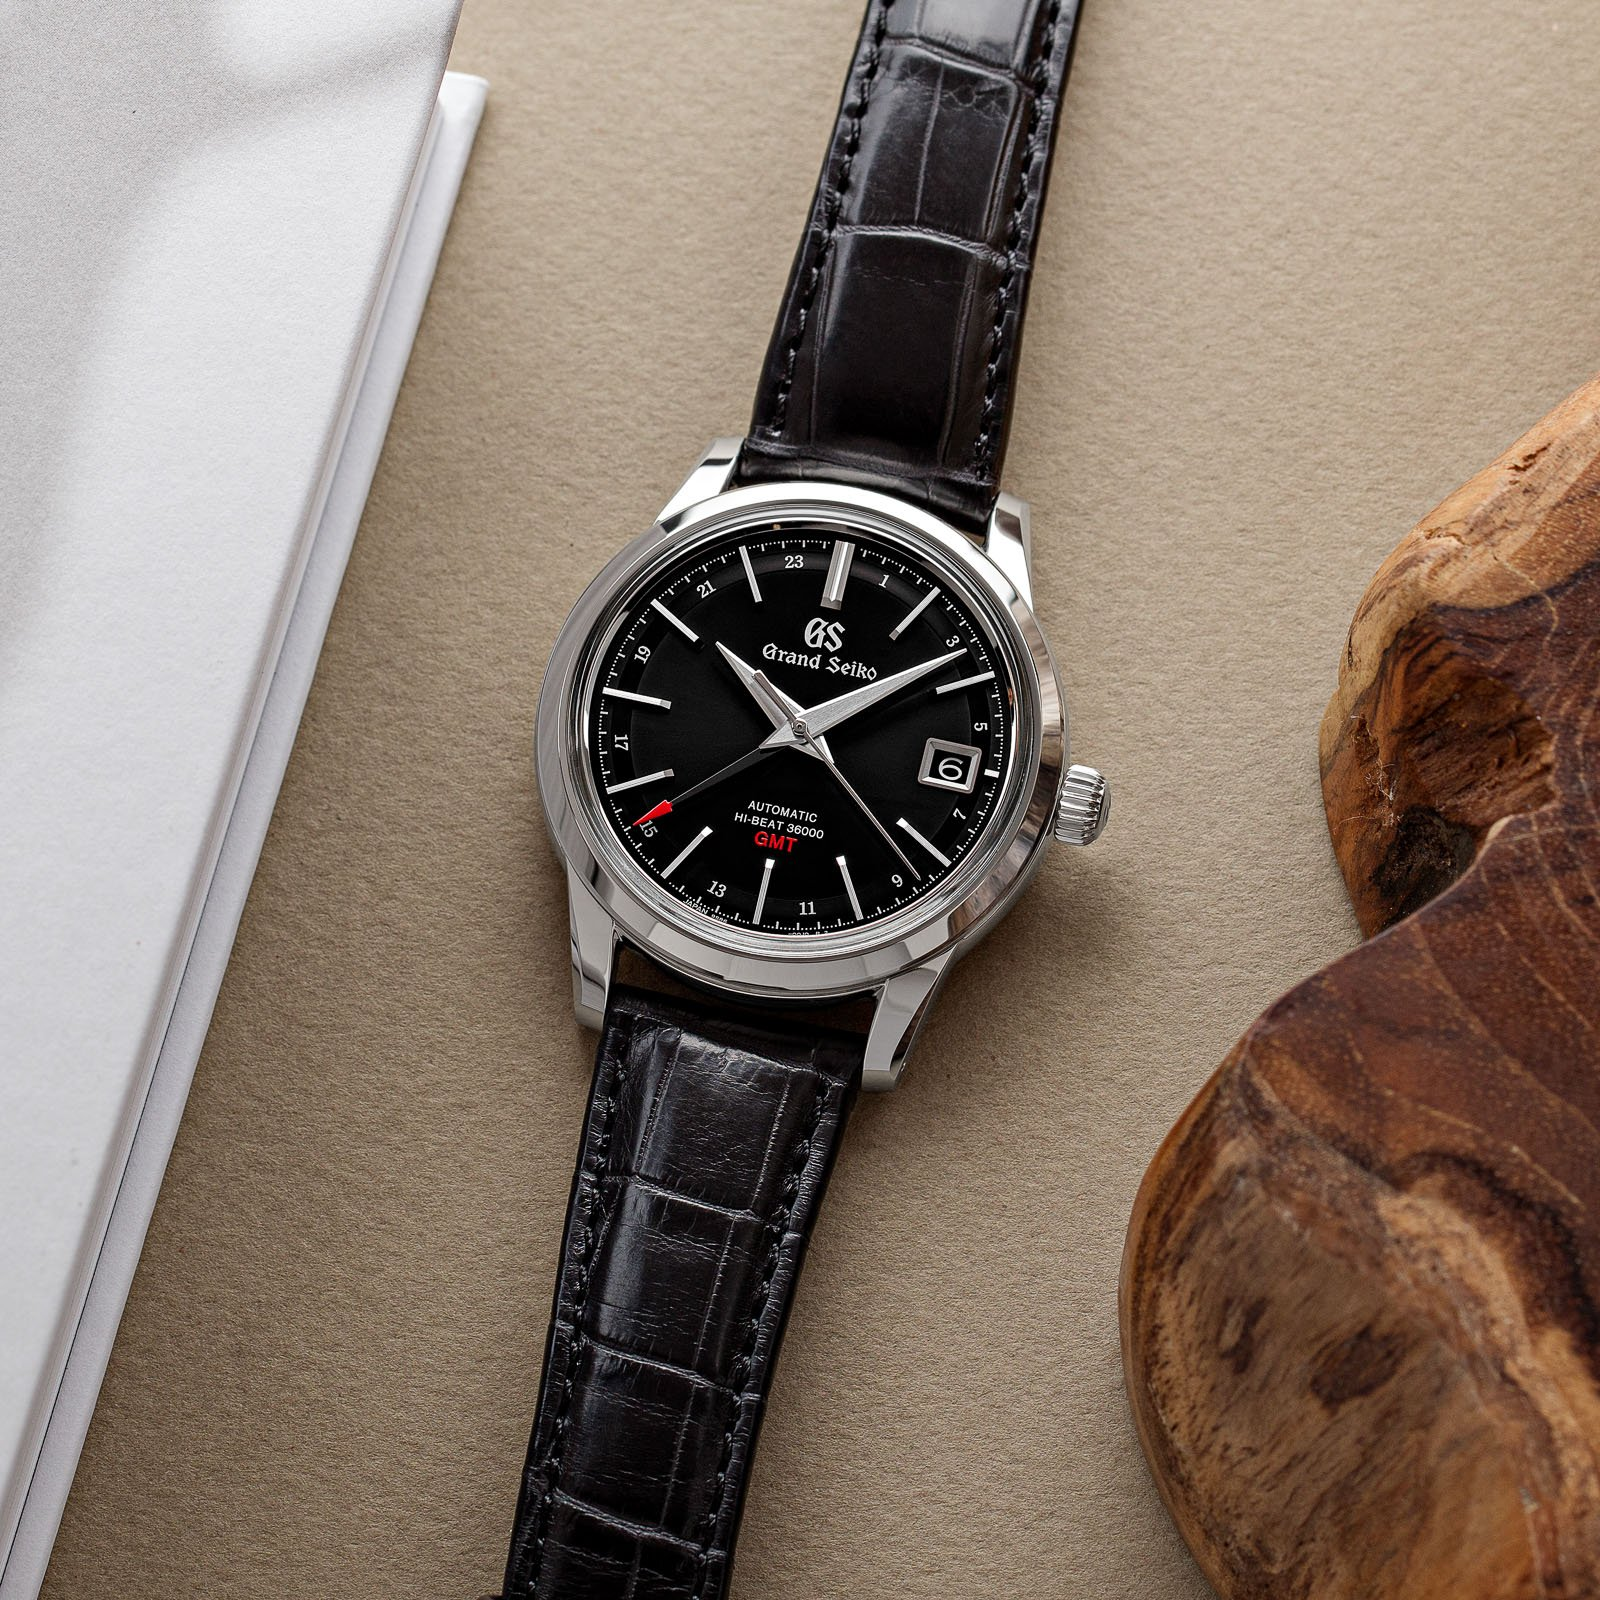 A dark dialed stainless steel Grand Seiko timepiece with a red-tipped GMT hand.